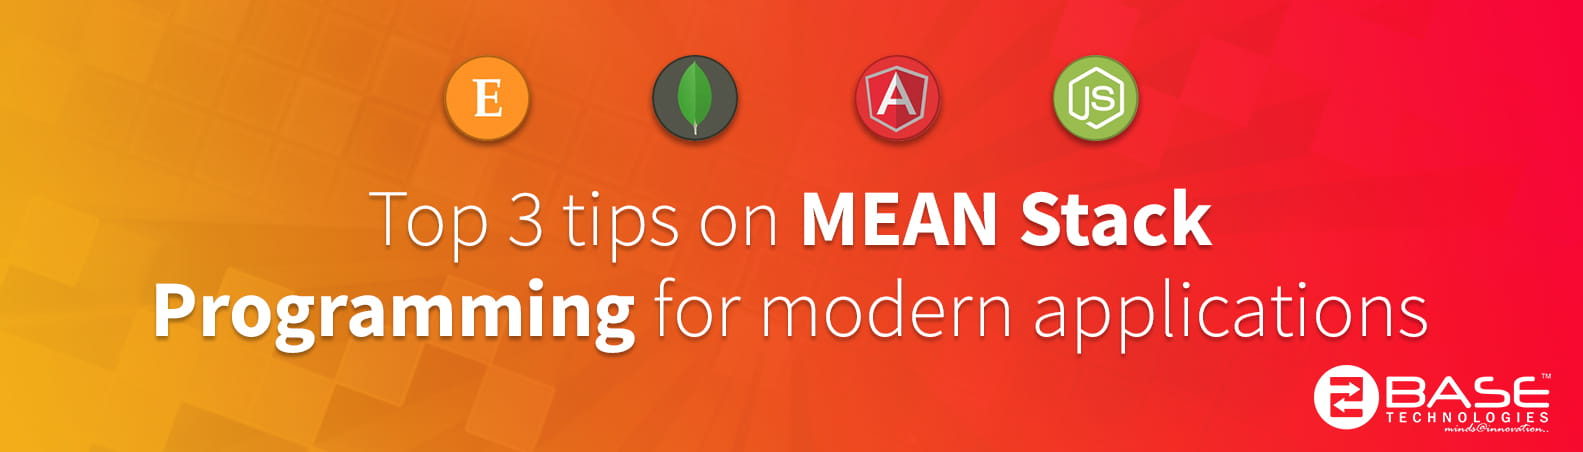 Top 3 Tips on Mean Stack Programming for Modern Applications